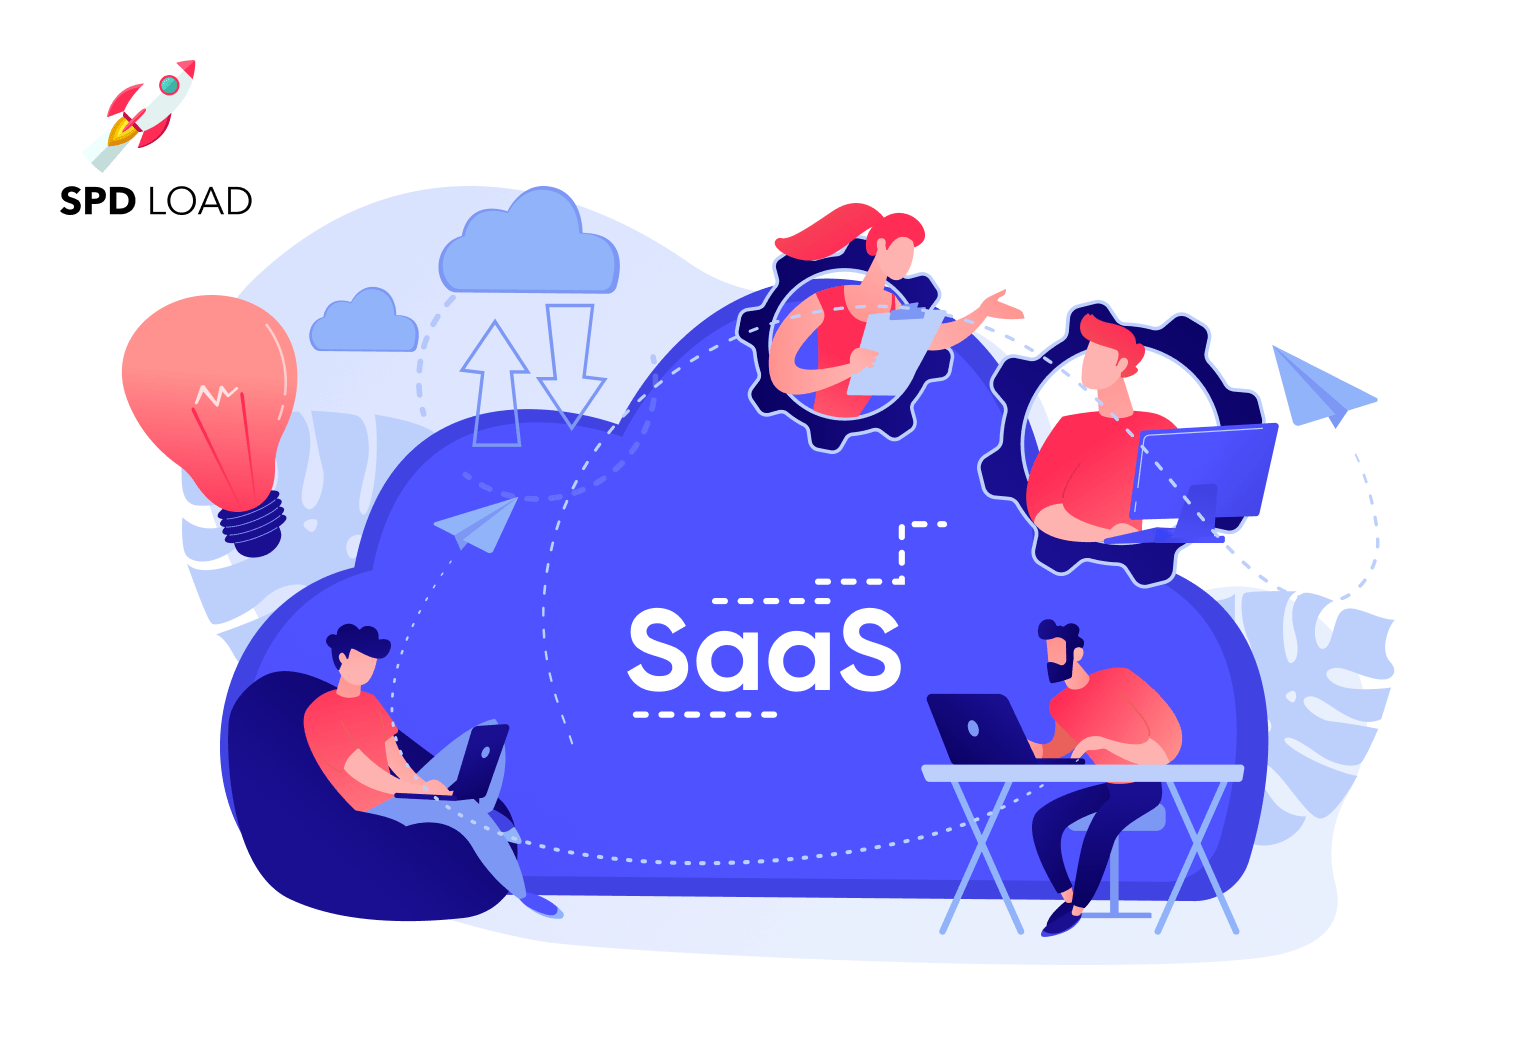 SpdLoad prepared an in-depth guide about saas development outsourcing